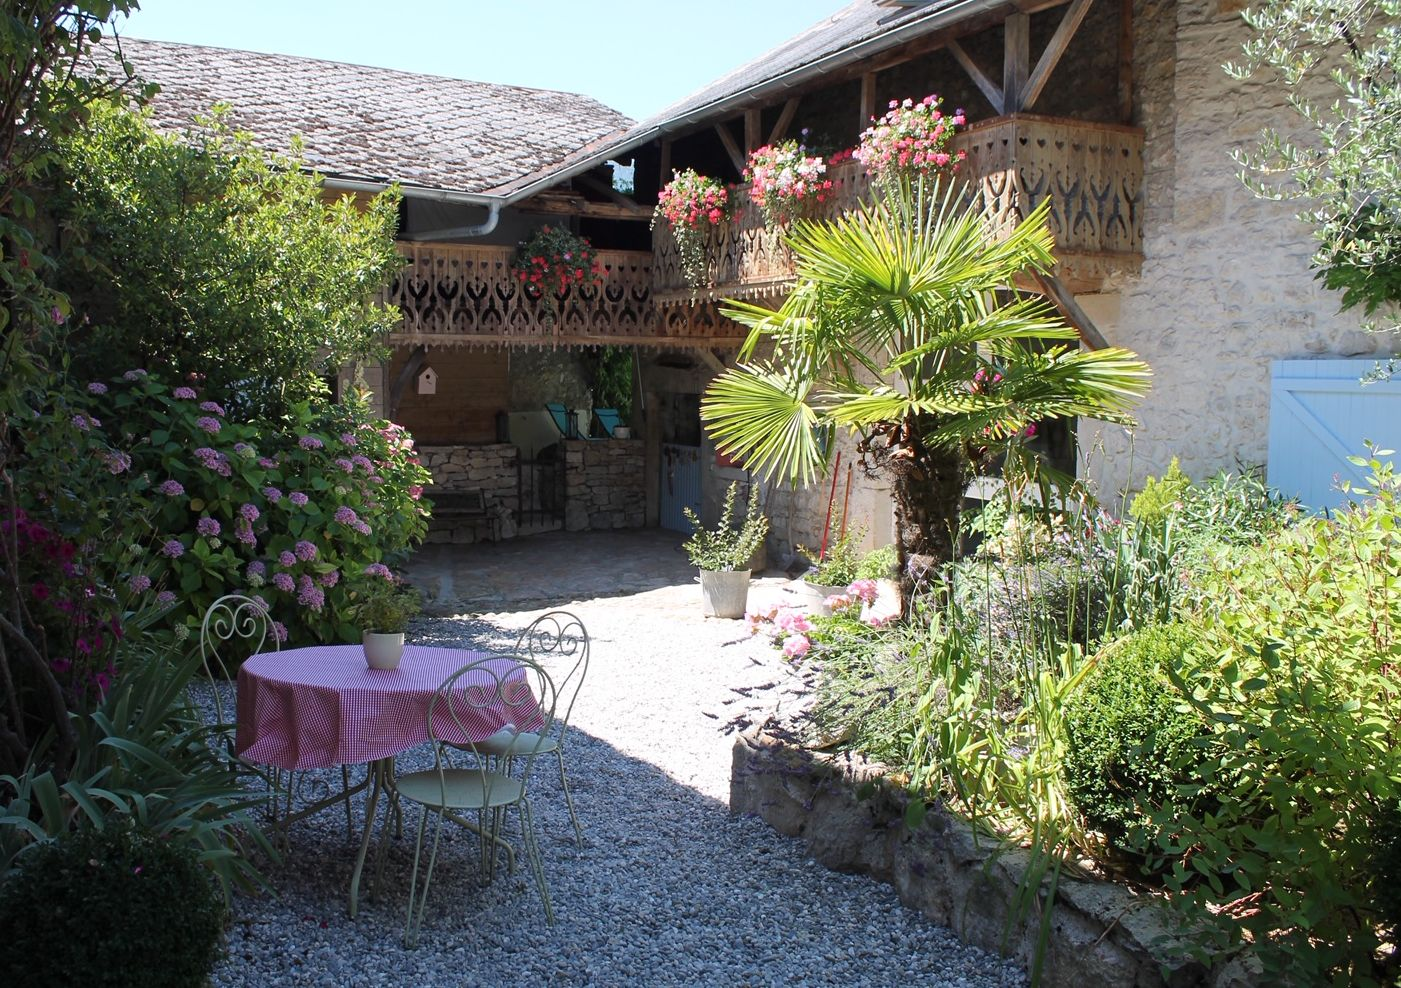 Annecy-Genève-Geneve-Lyon-Bugey-Bugeysud-Ain-France-gites-gite-gîtes-gîte-les gites de sarah et Claude-pet-pet friendly-dog-cat-zen-nature-guest house-vacances-vacance-grand colombier-Le grand colombier-lesgitesdesarahetclaude